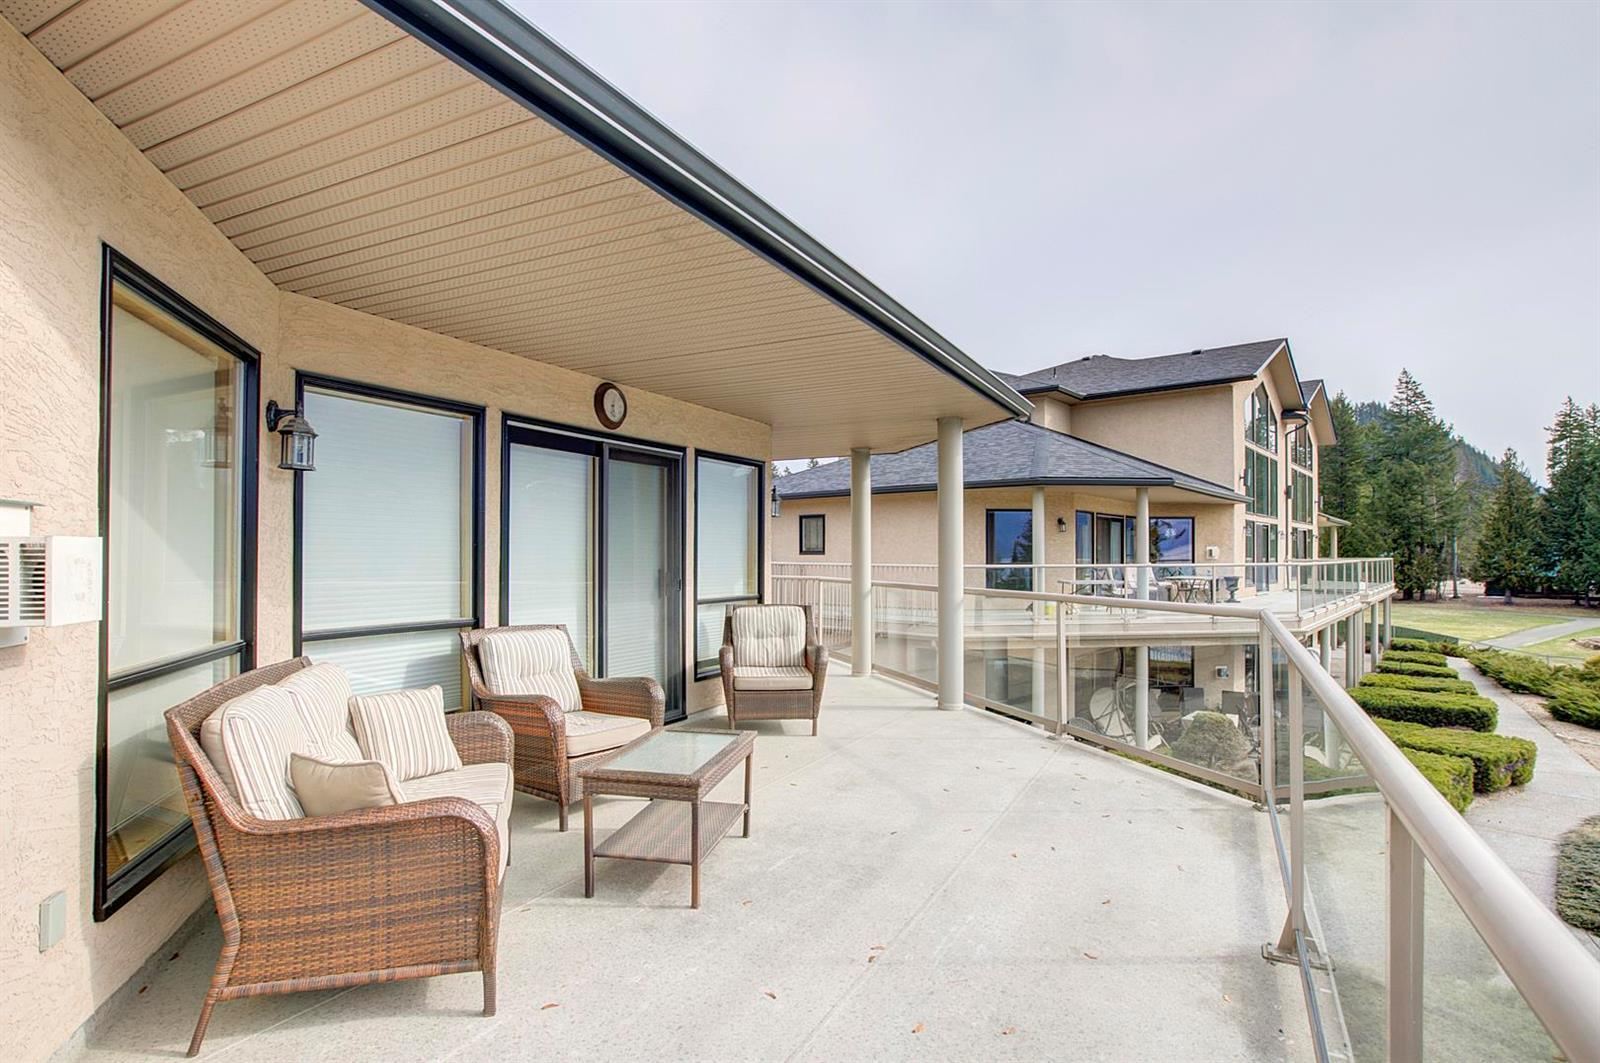 #203 3473 Lakeview Place,, Enderby, British Columbia  V0E 1V5 - Photo 36 - 10229003